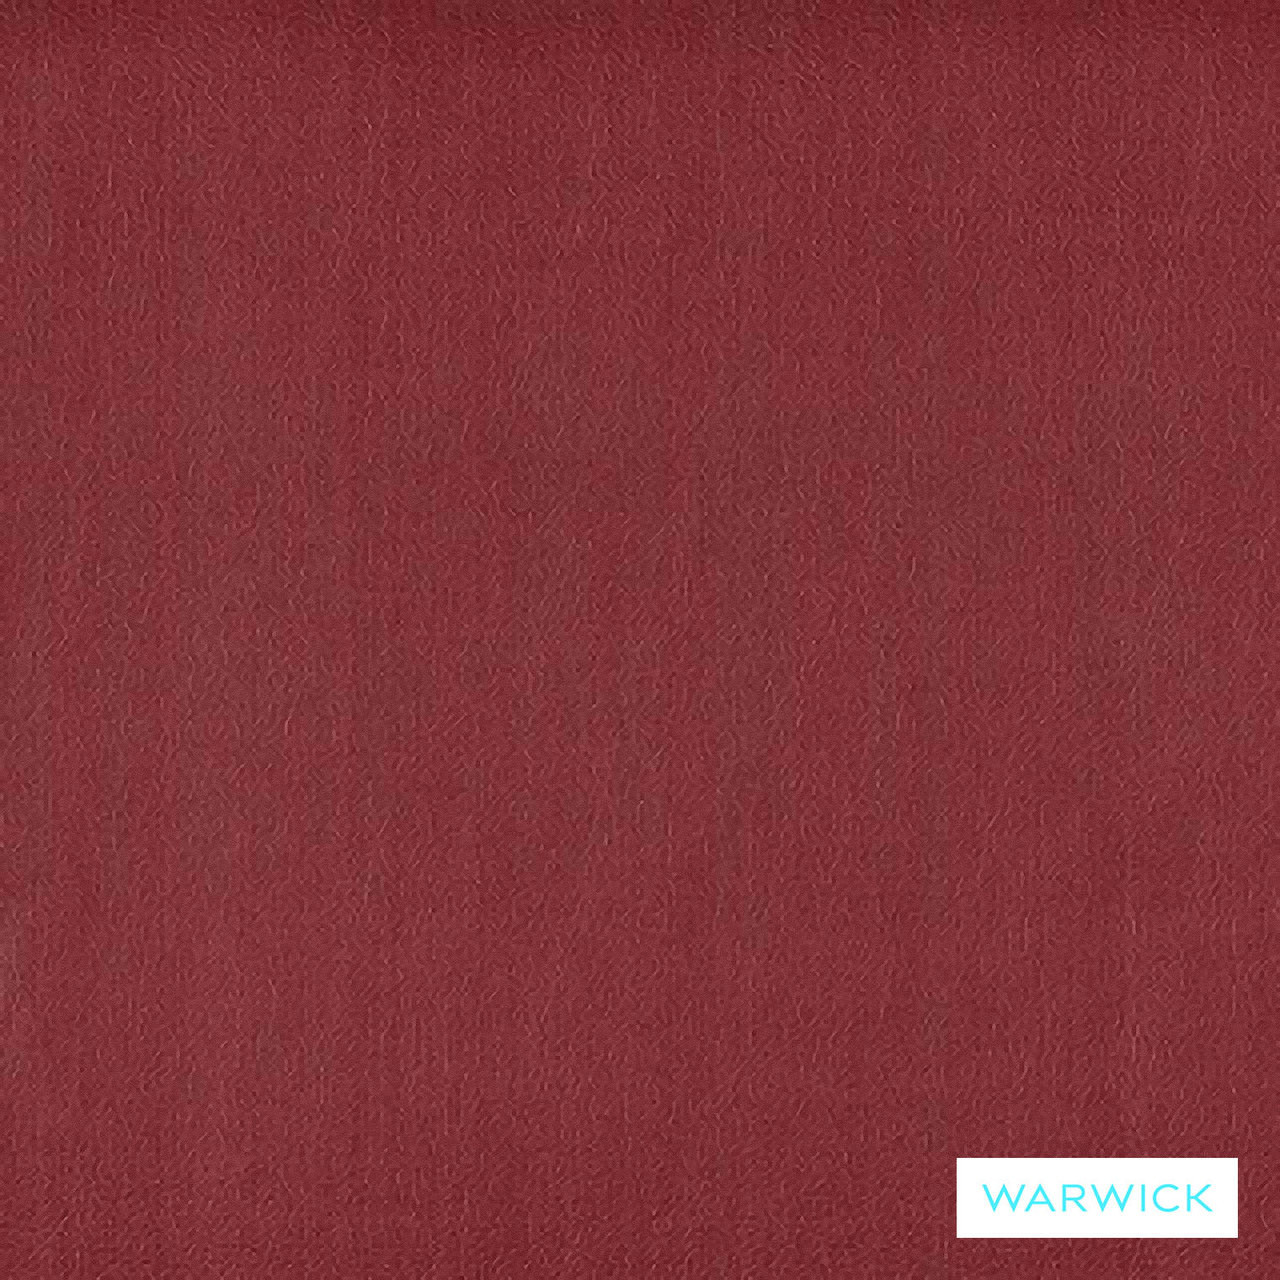 Warwick Lustrell Charisma Cabernet  | Upholstery Fabric - Burgundy, Plain, Red, Vinyl, HealthGuard, Synthetic, Washable, Commercial Use, Standard Width